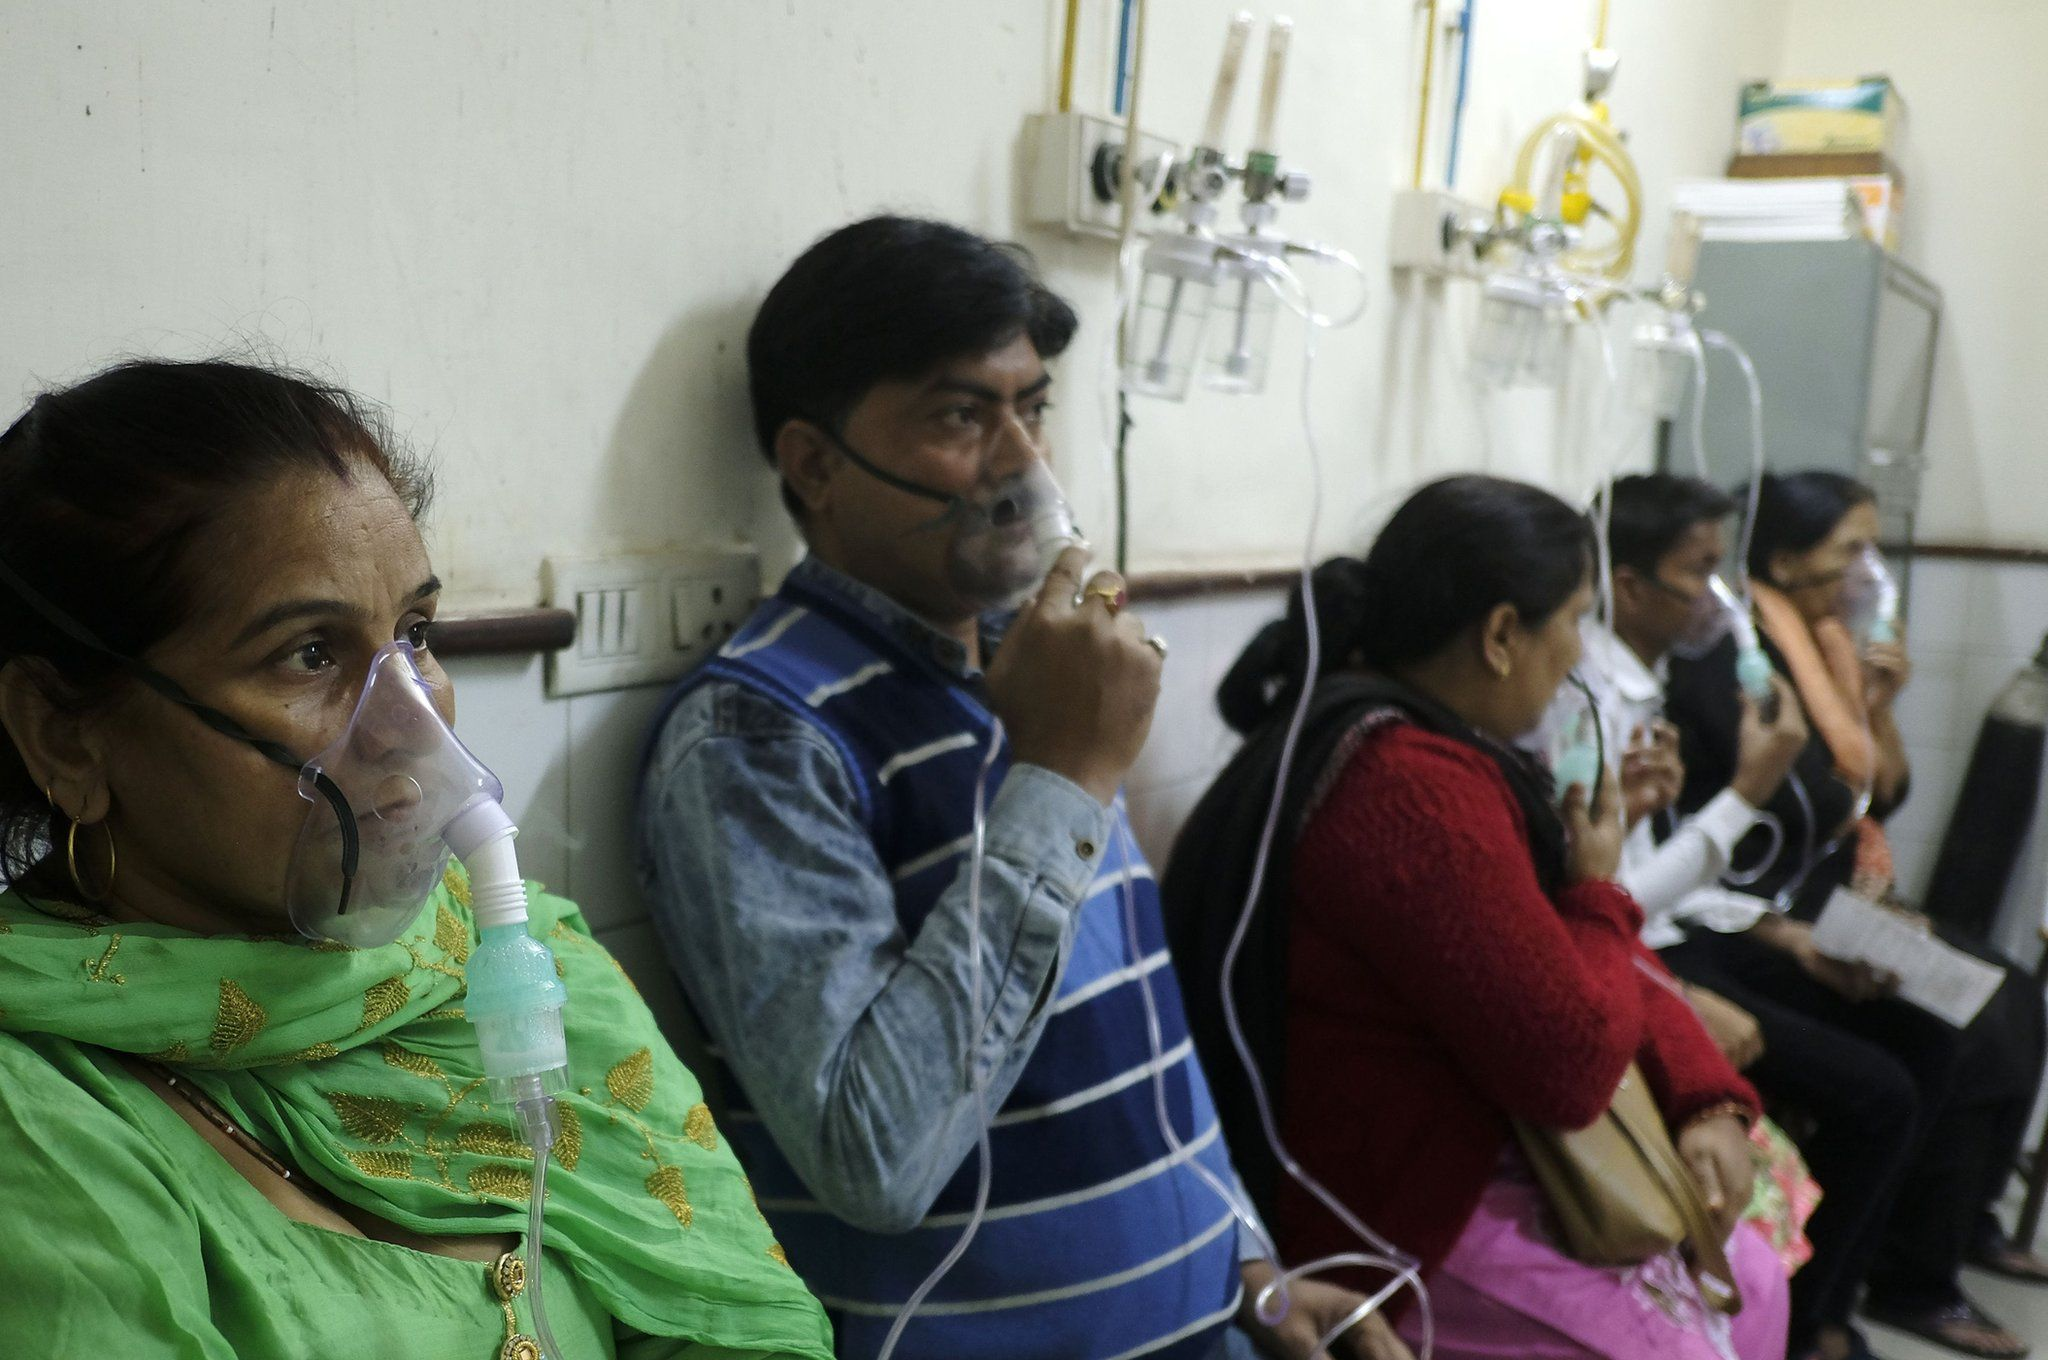 Indians receive treatment for respiratory problems at a hospital in Delhi on November 6, 2018